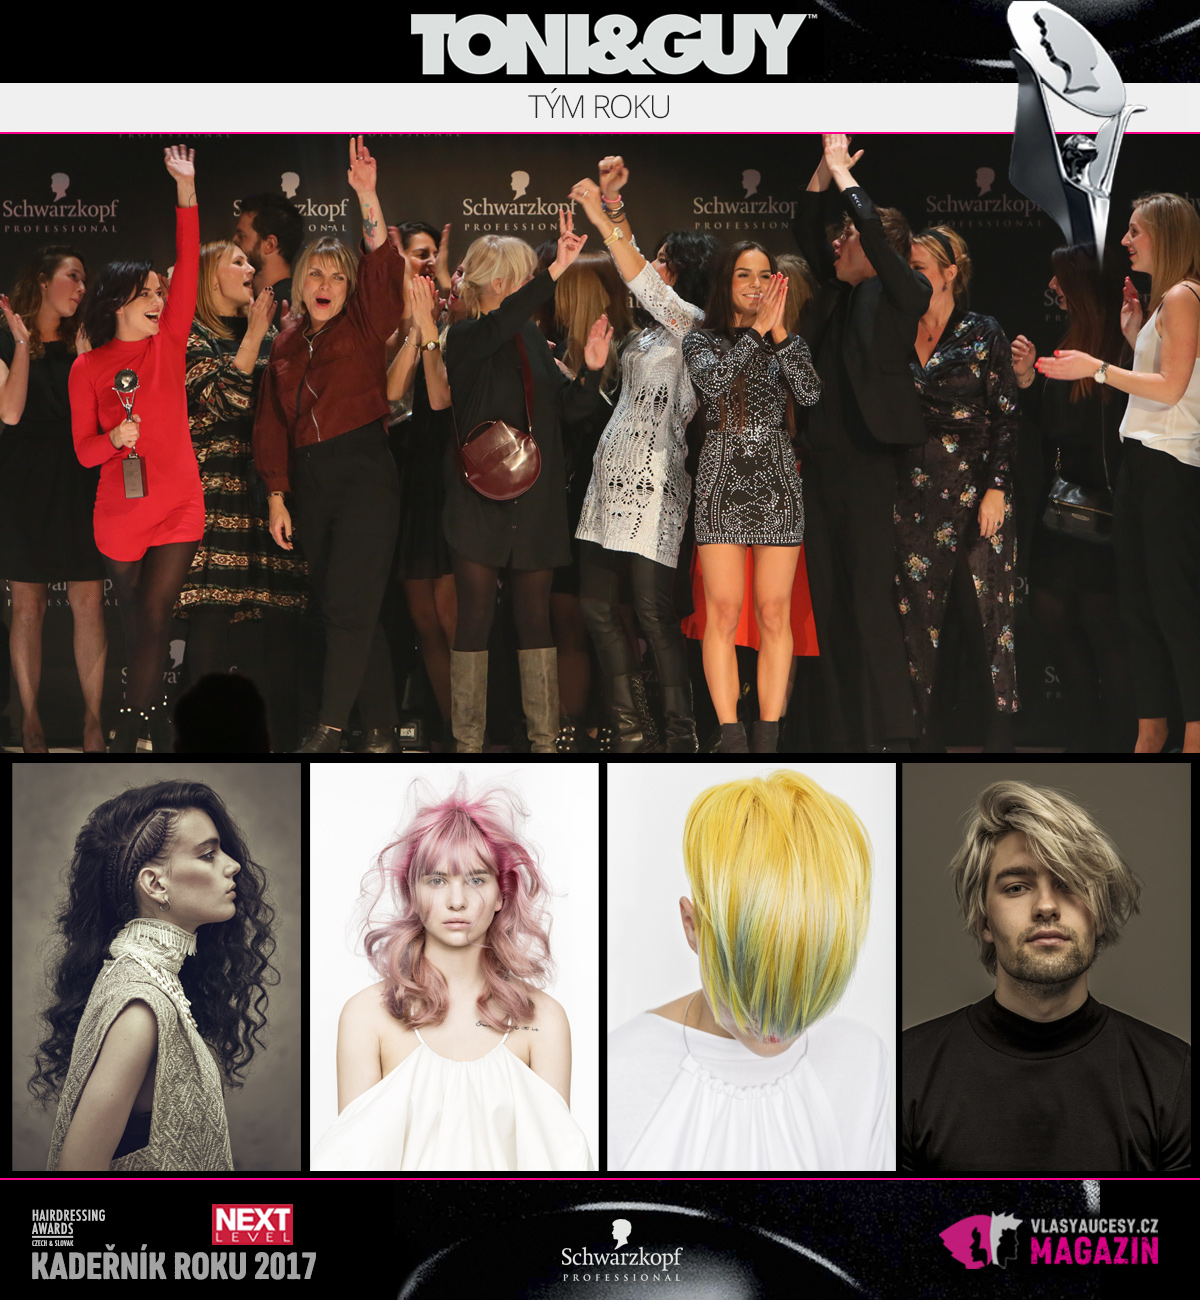 Týmem roku 2017 soutěže Czech and Slovak Hairdressing Awards je Toni&Guy.